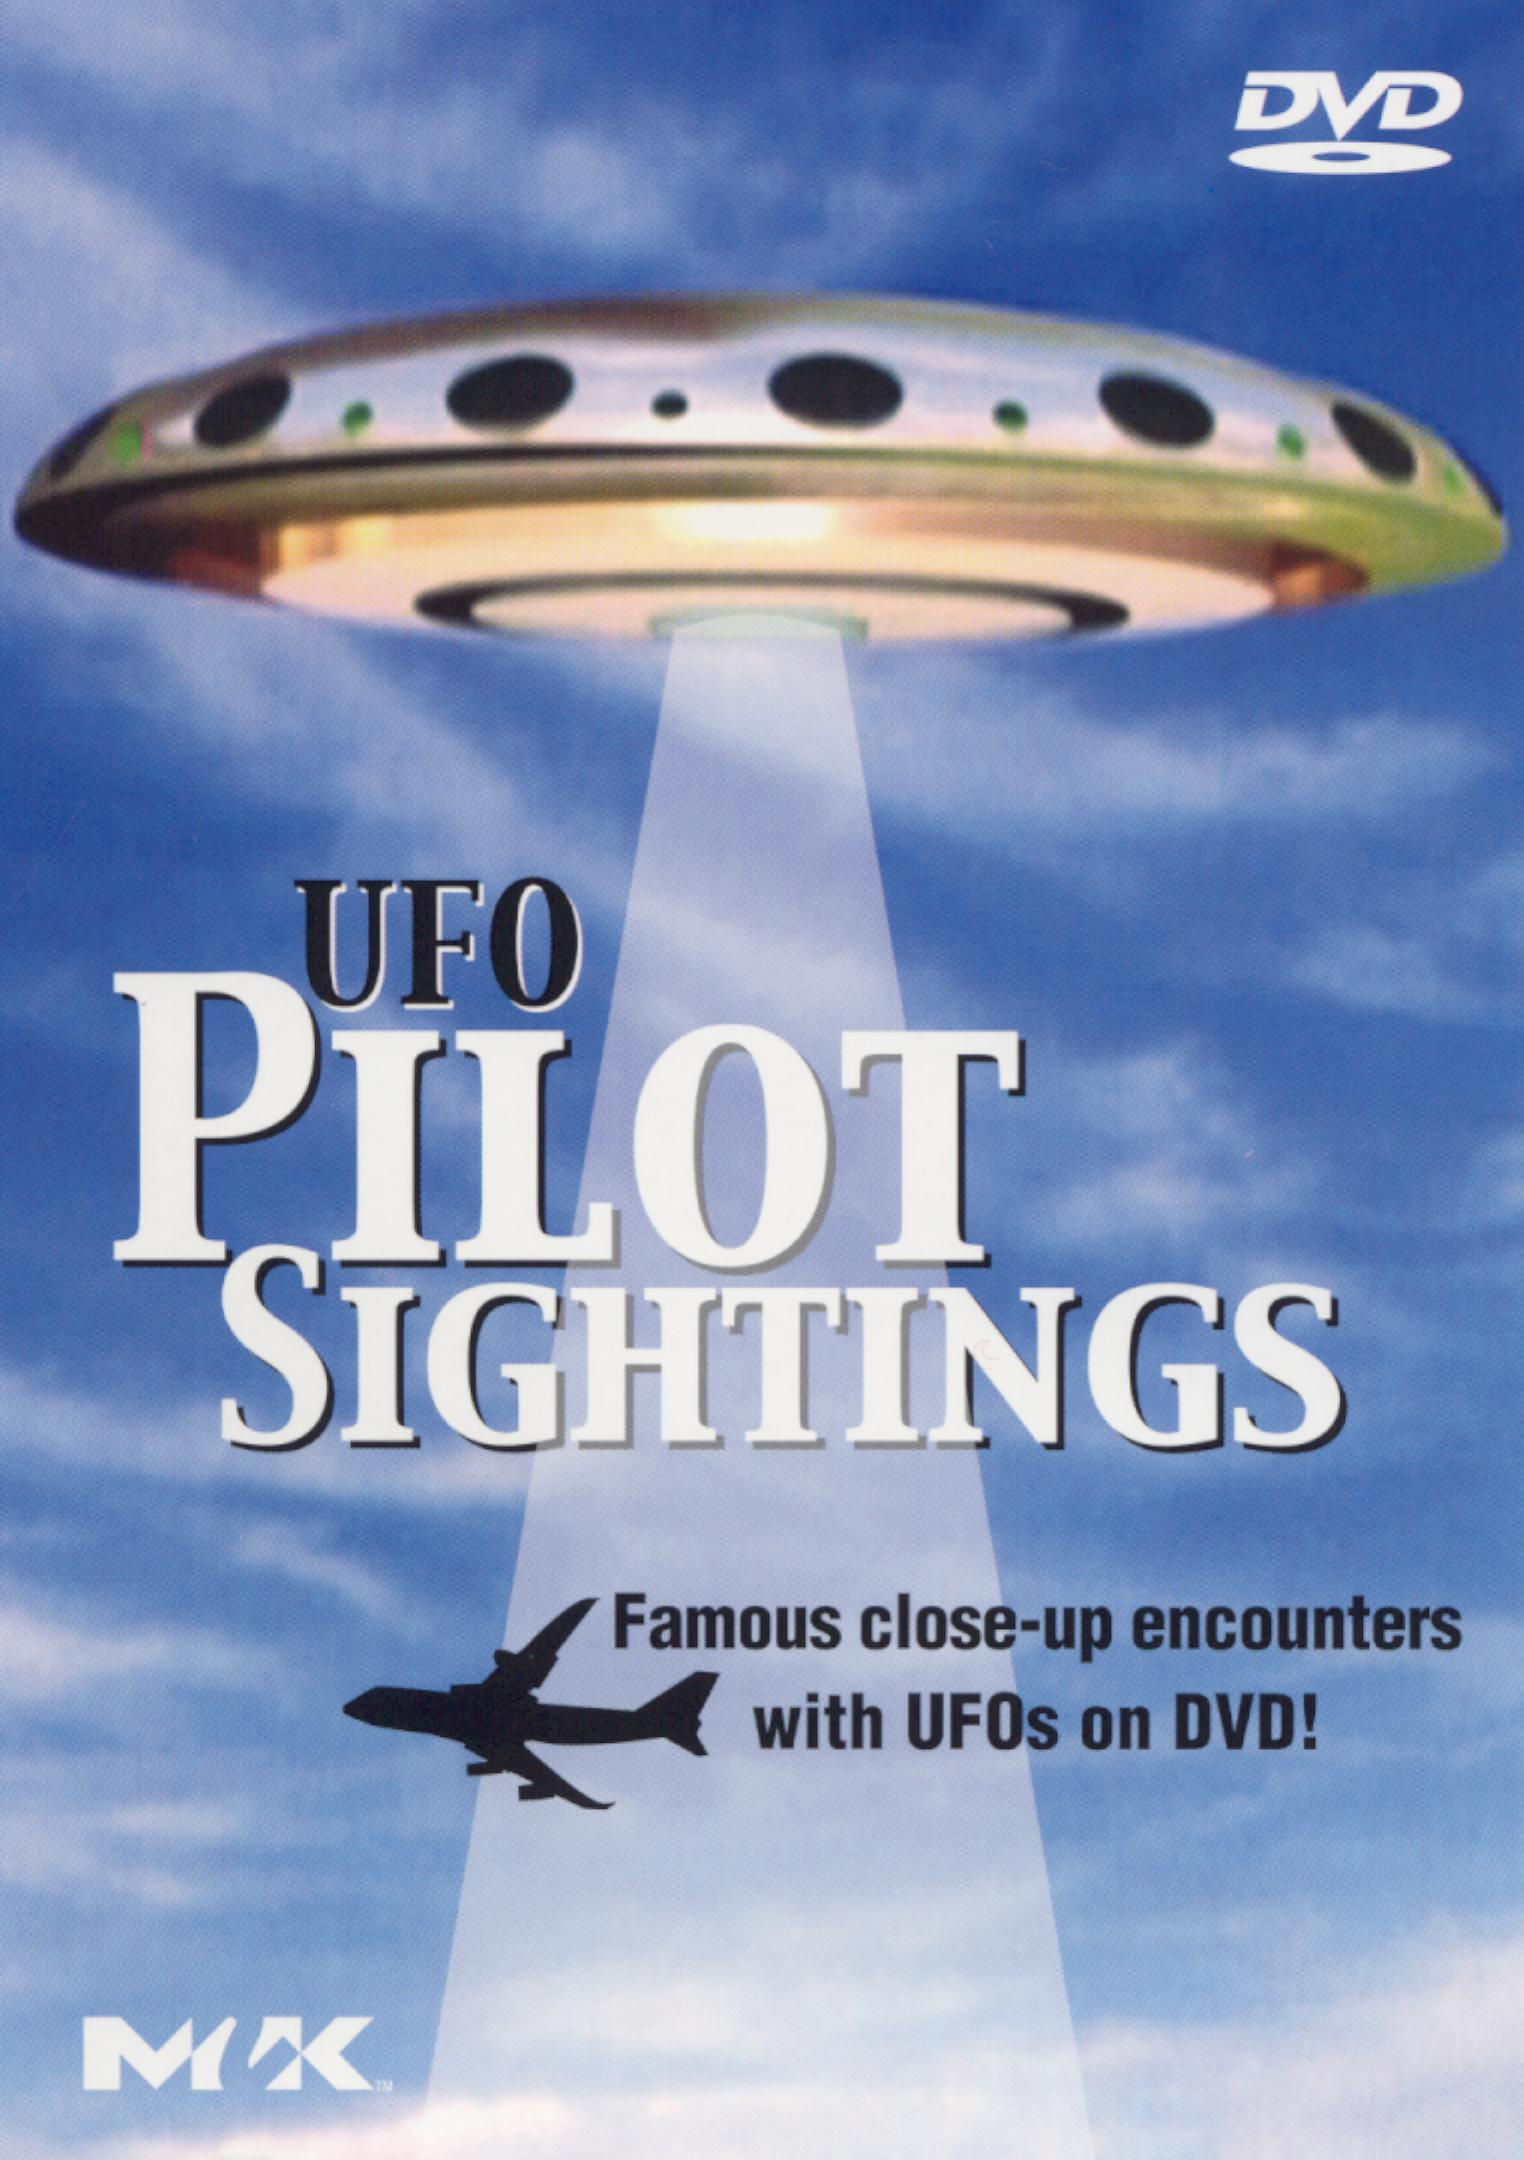 UFO Pilot Sightings